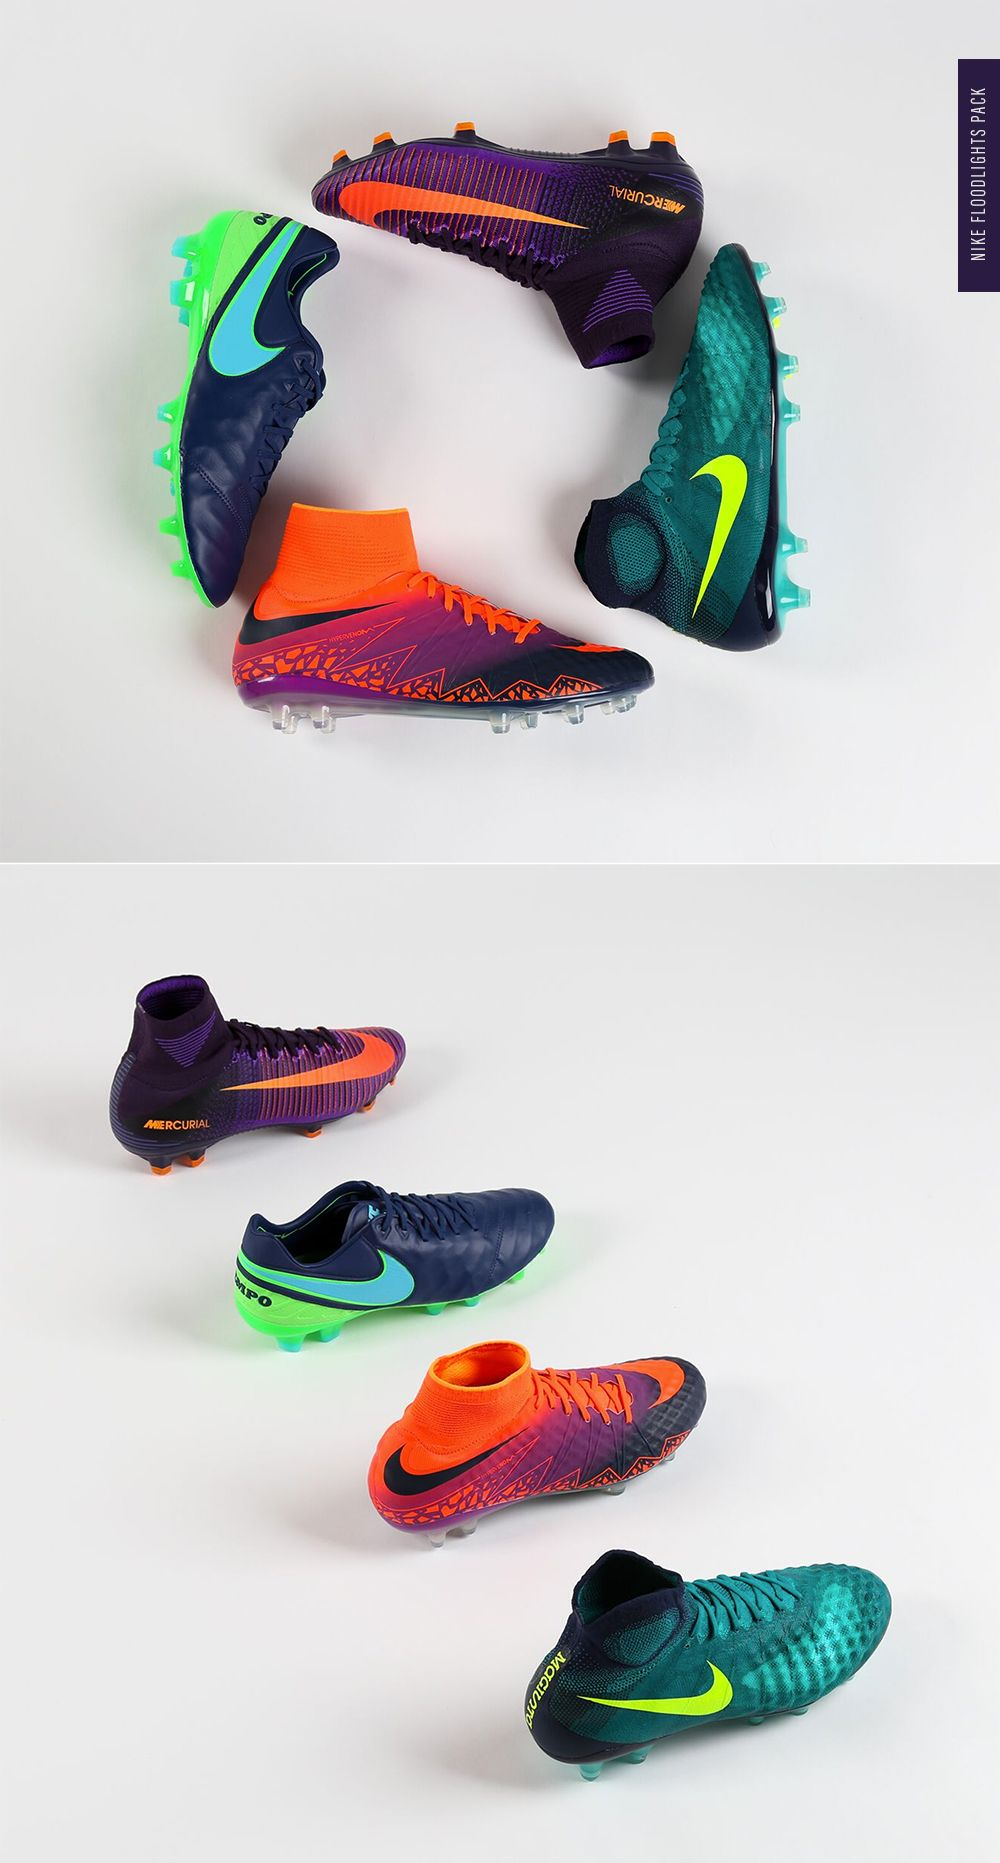 premium selection 9df21 a2ddf Nike Floodlights Pack. Stand out on the pitch in the all new Floodlights  Magista Obra, Hypervenom Phantom, Mercurial Superfly and Tiempo Legend.